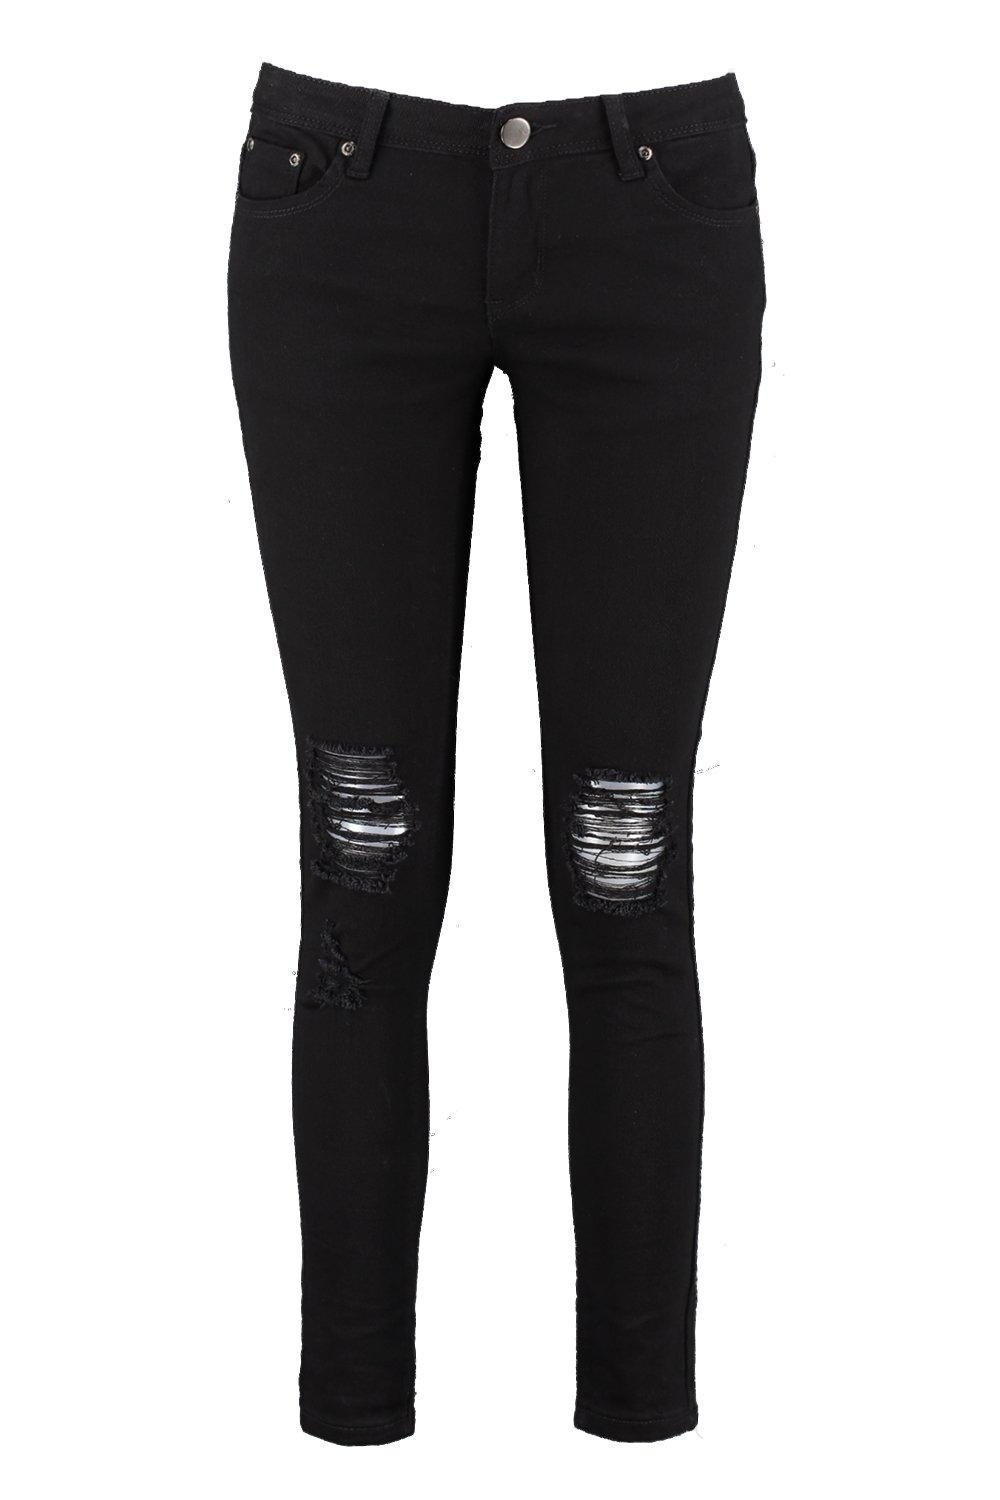 Laura Ripped Knee Black Skinny Jeans | Boohoo